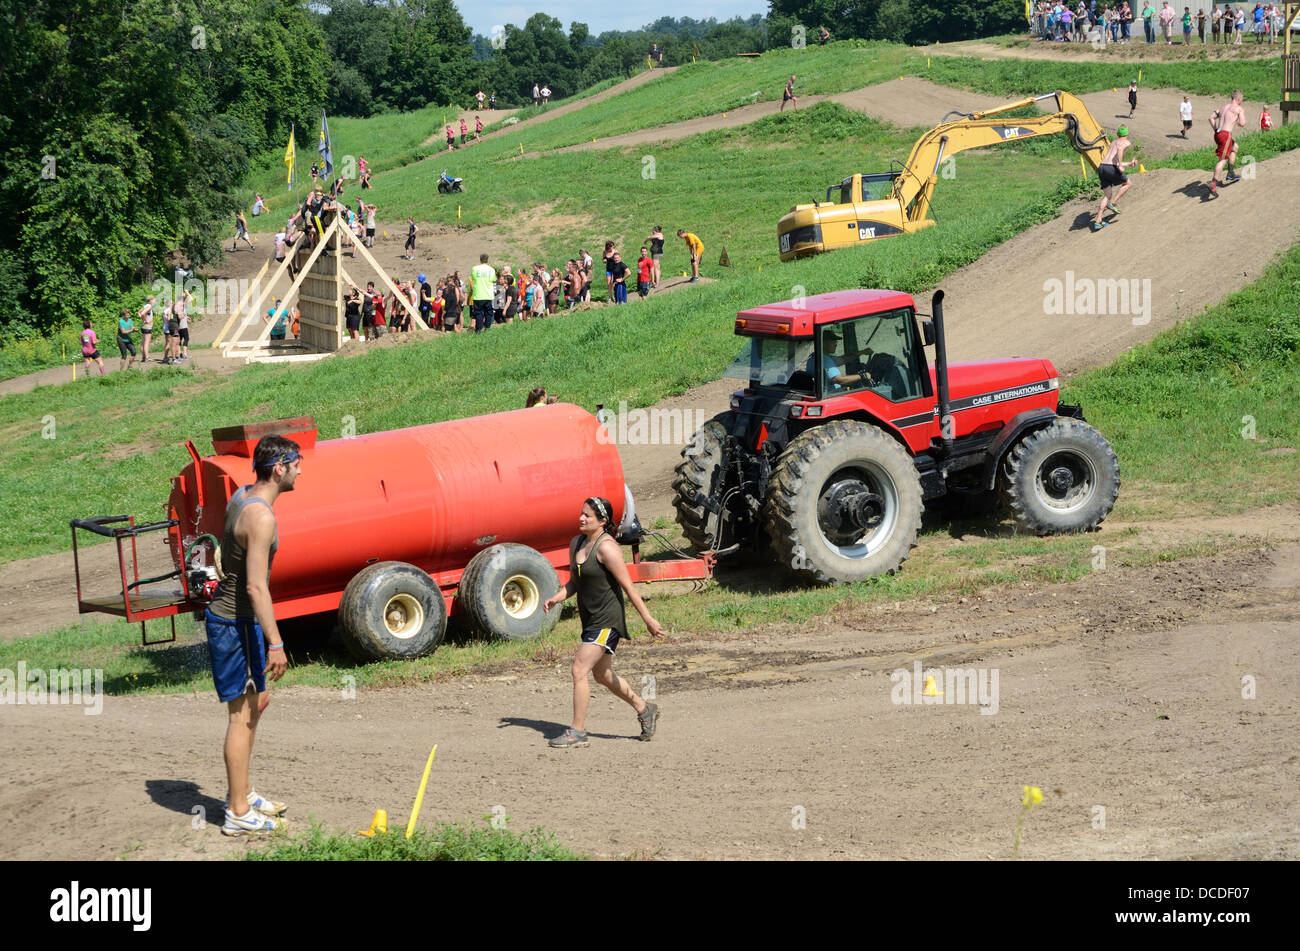 Obstacle course in 'The 5k Mud Factor' in Pavilion NY. - Stock Image